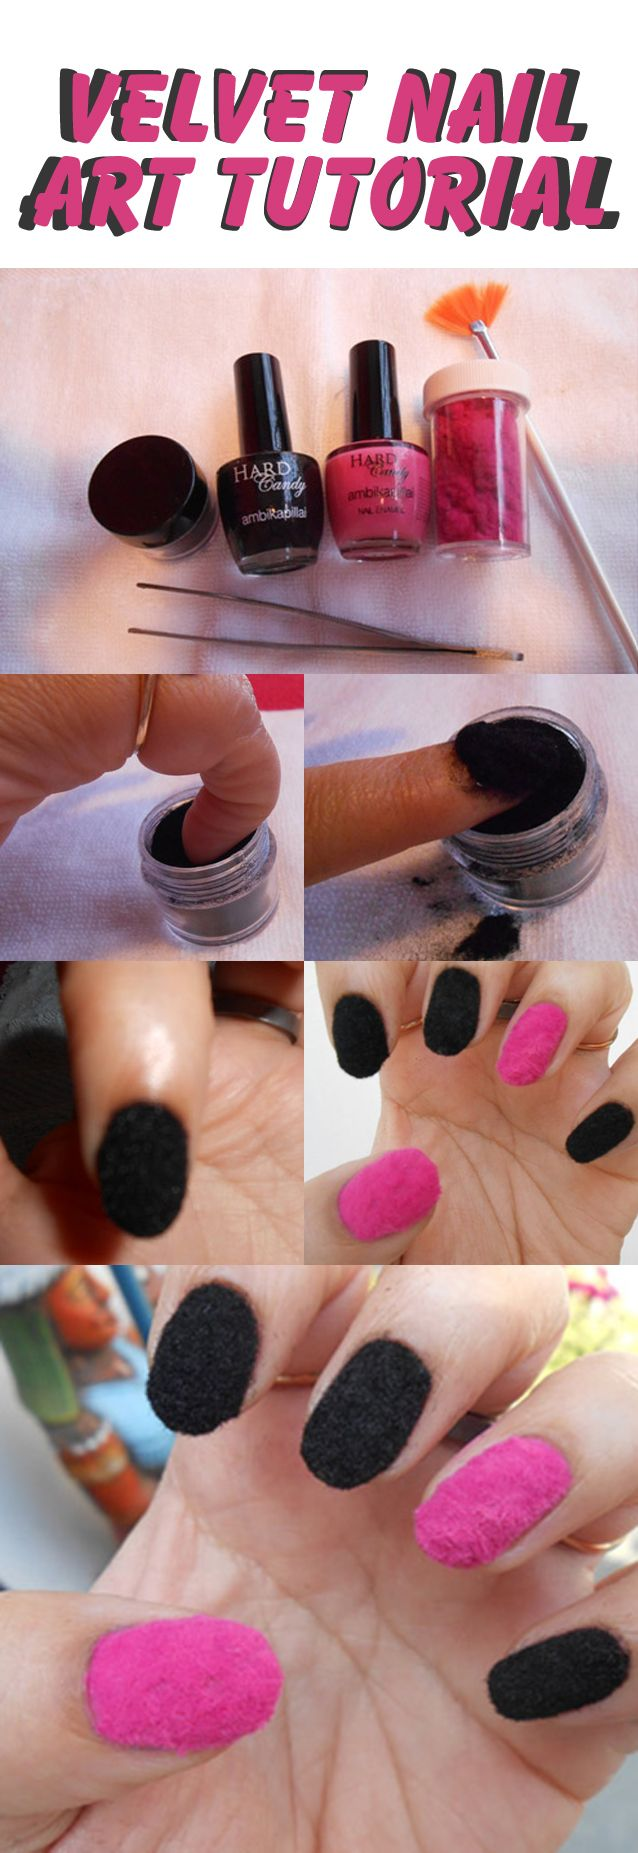 Simple Nail Art Tutorial: This velvet nail art tutorial shows how you can get these nails done at home easily.